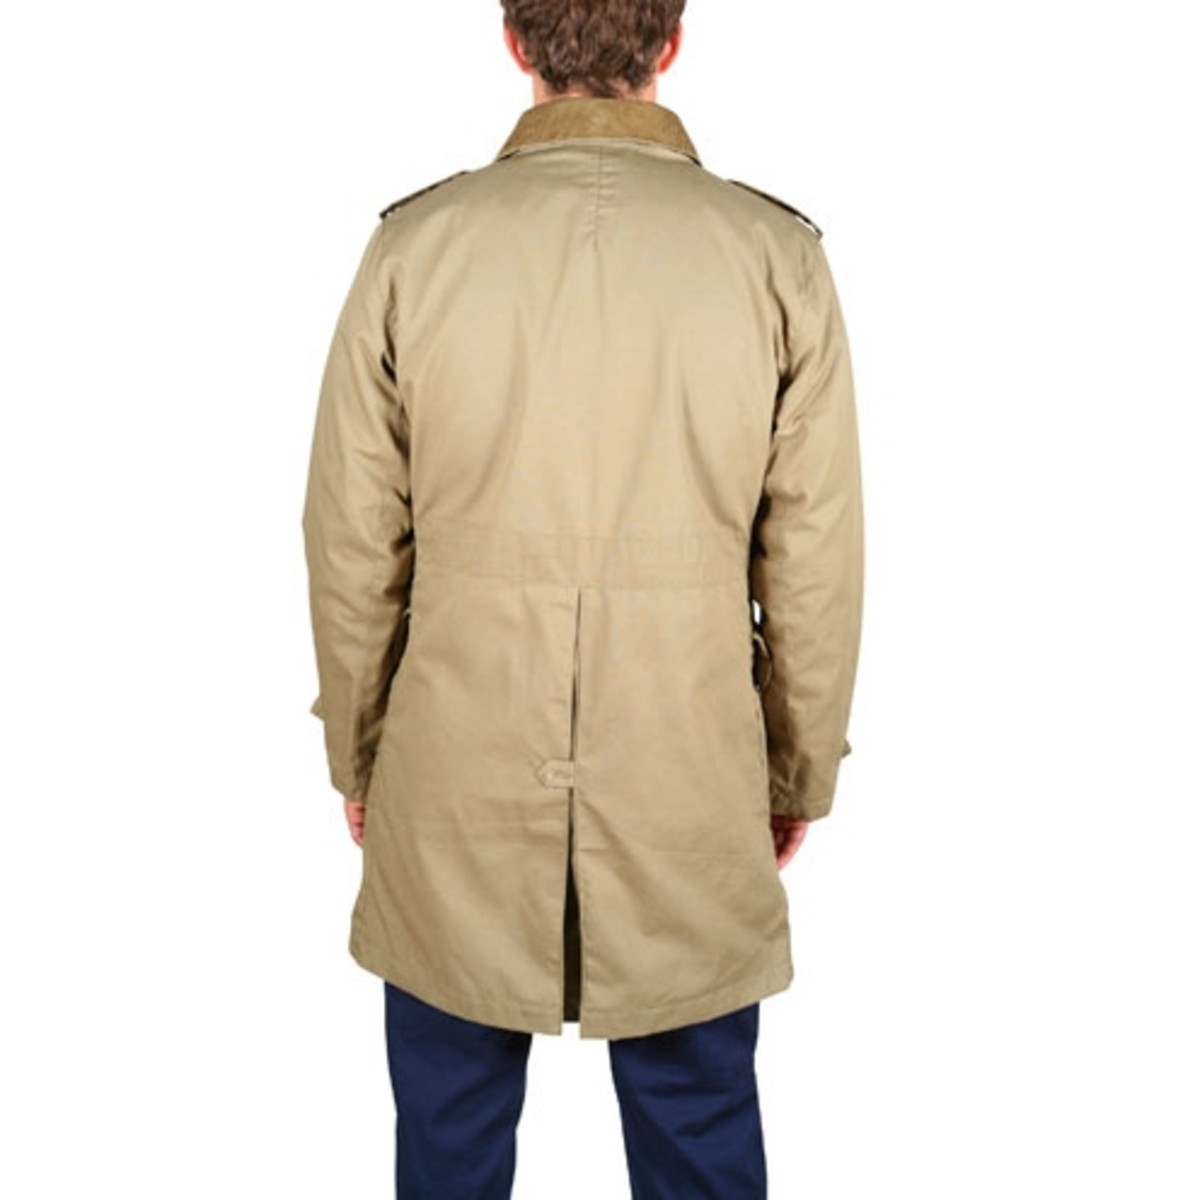 Penfield SS2011 Jackets 10